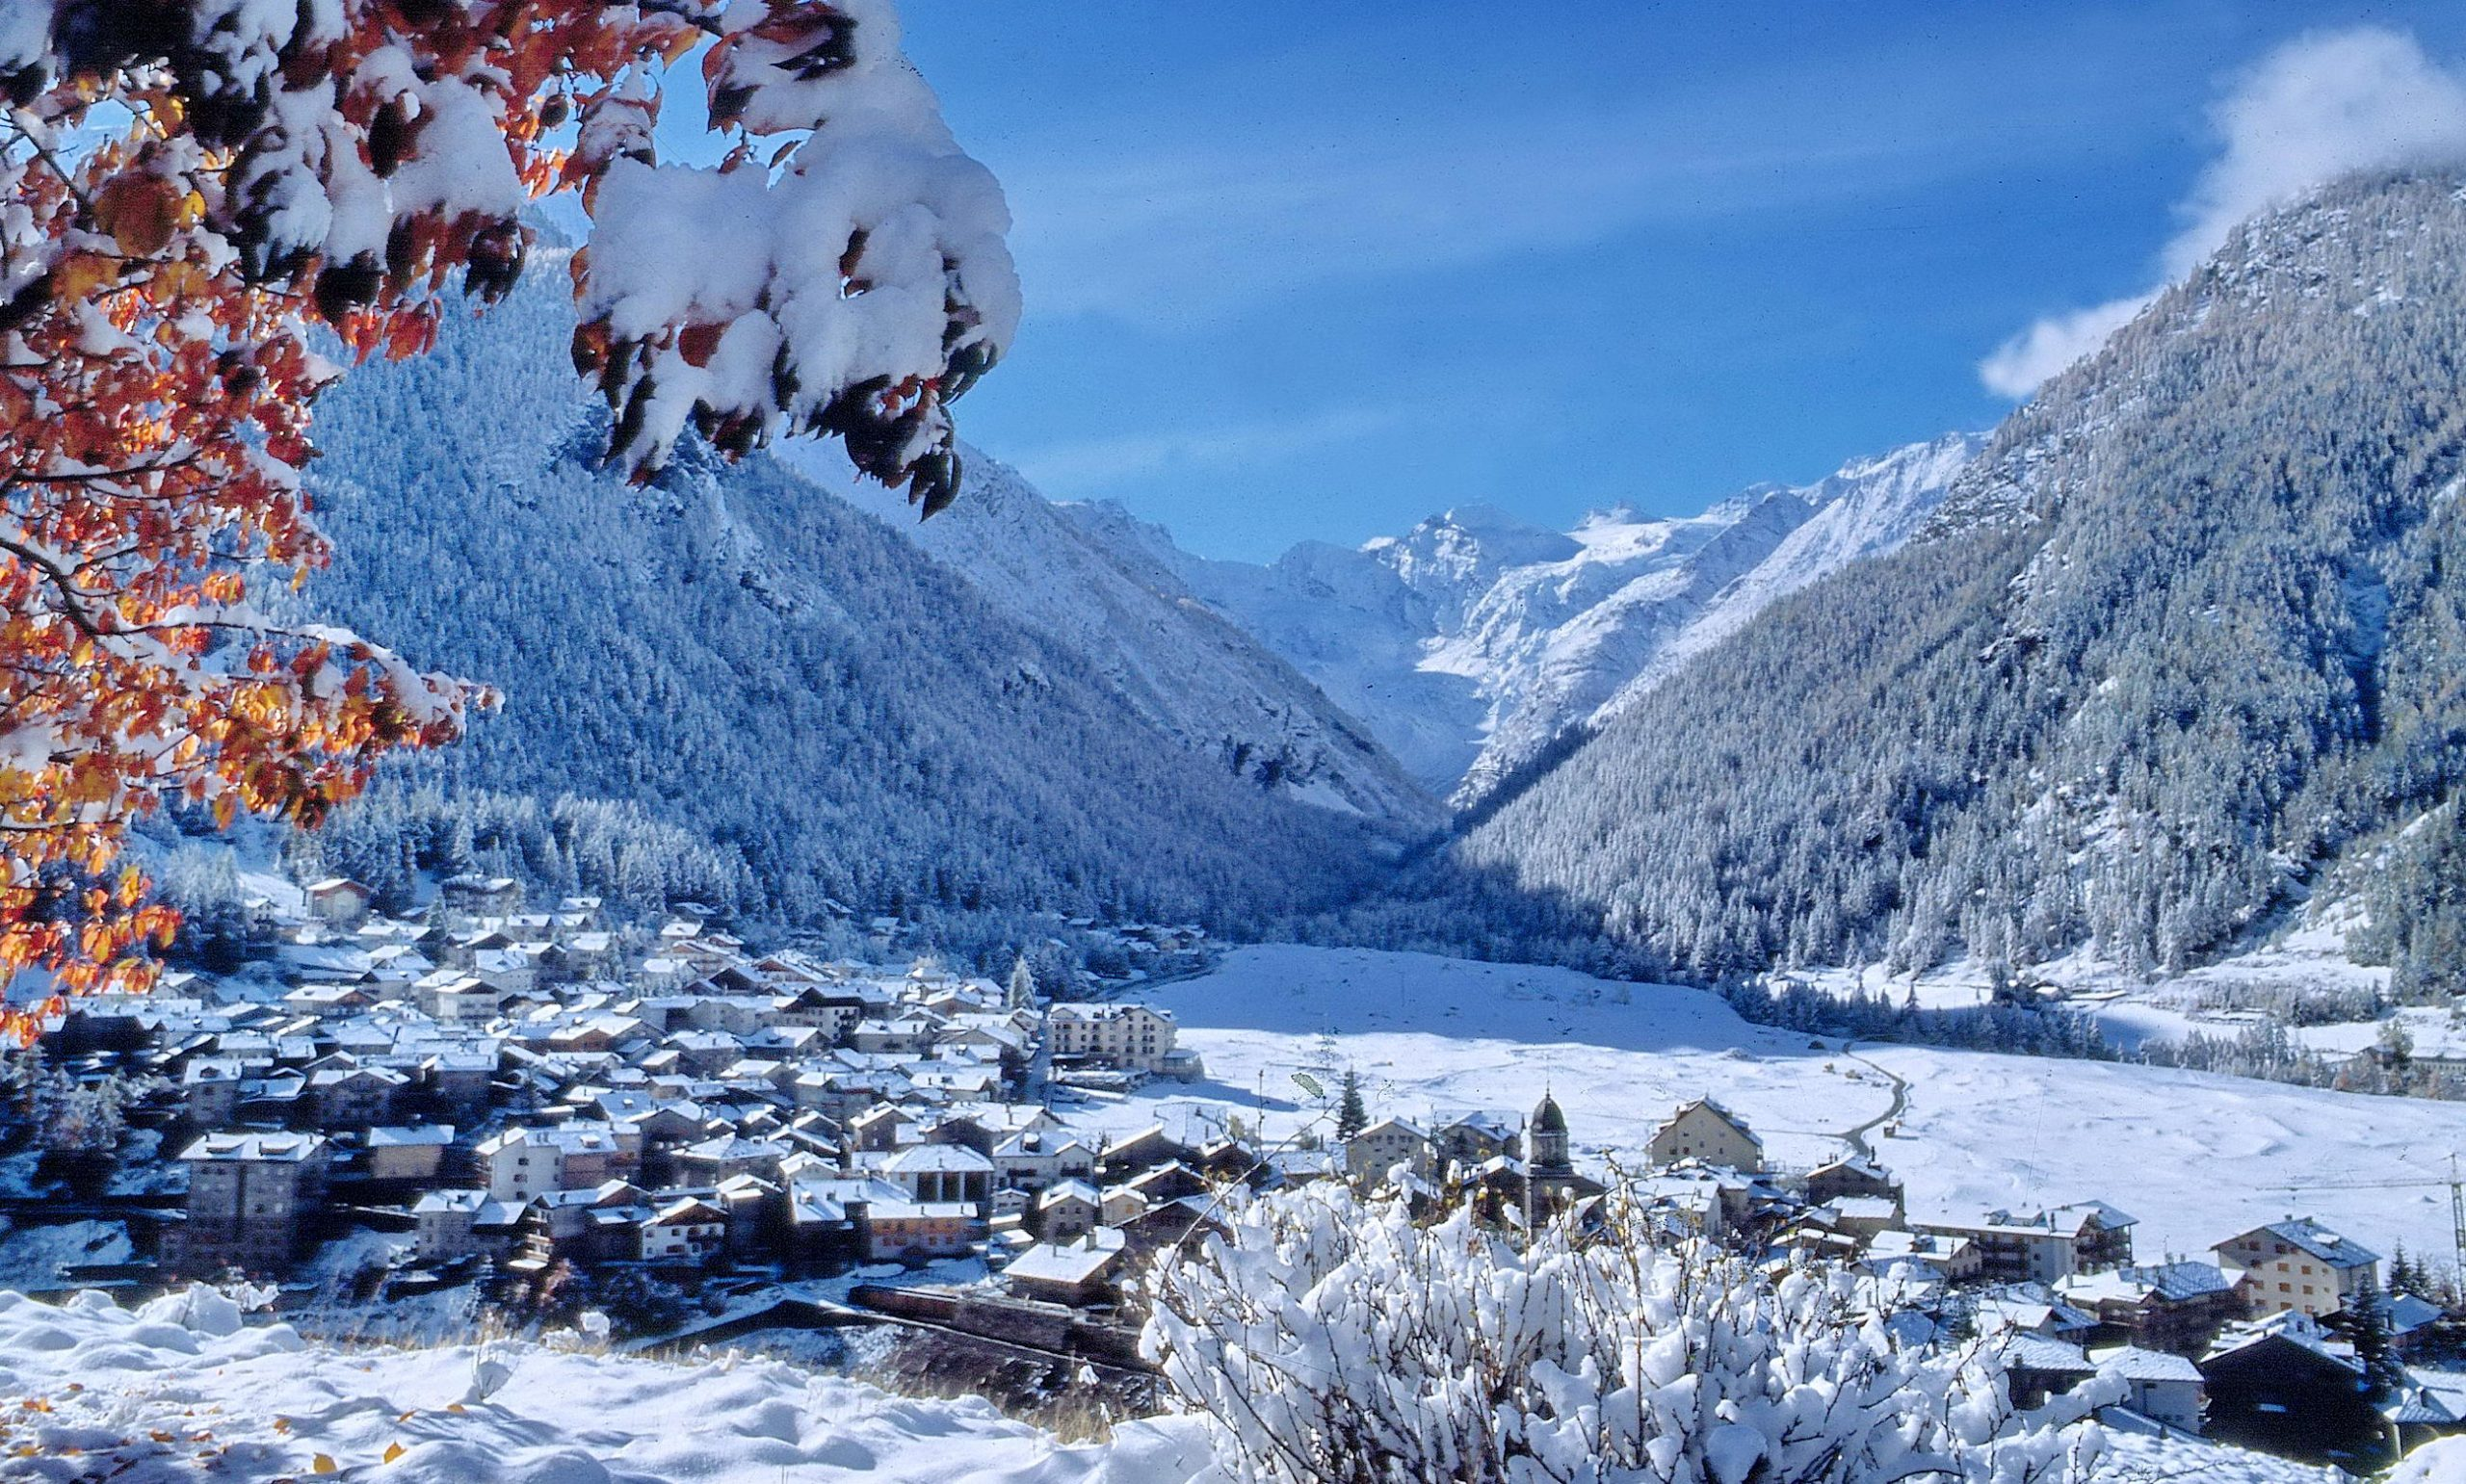 Winter-in-Cogne-by-Paolo-Rey-1-2600-besk-scaled.jpg